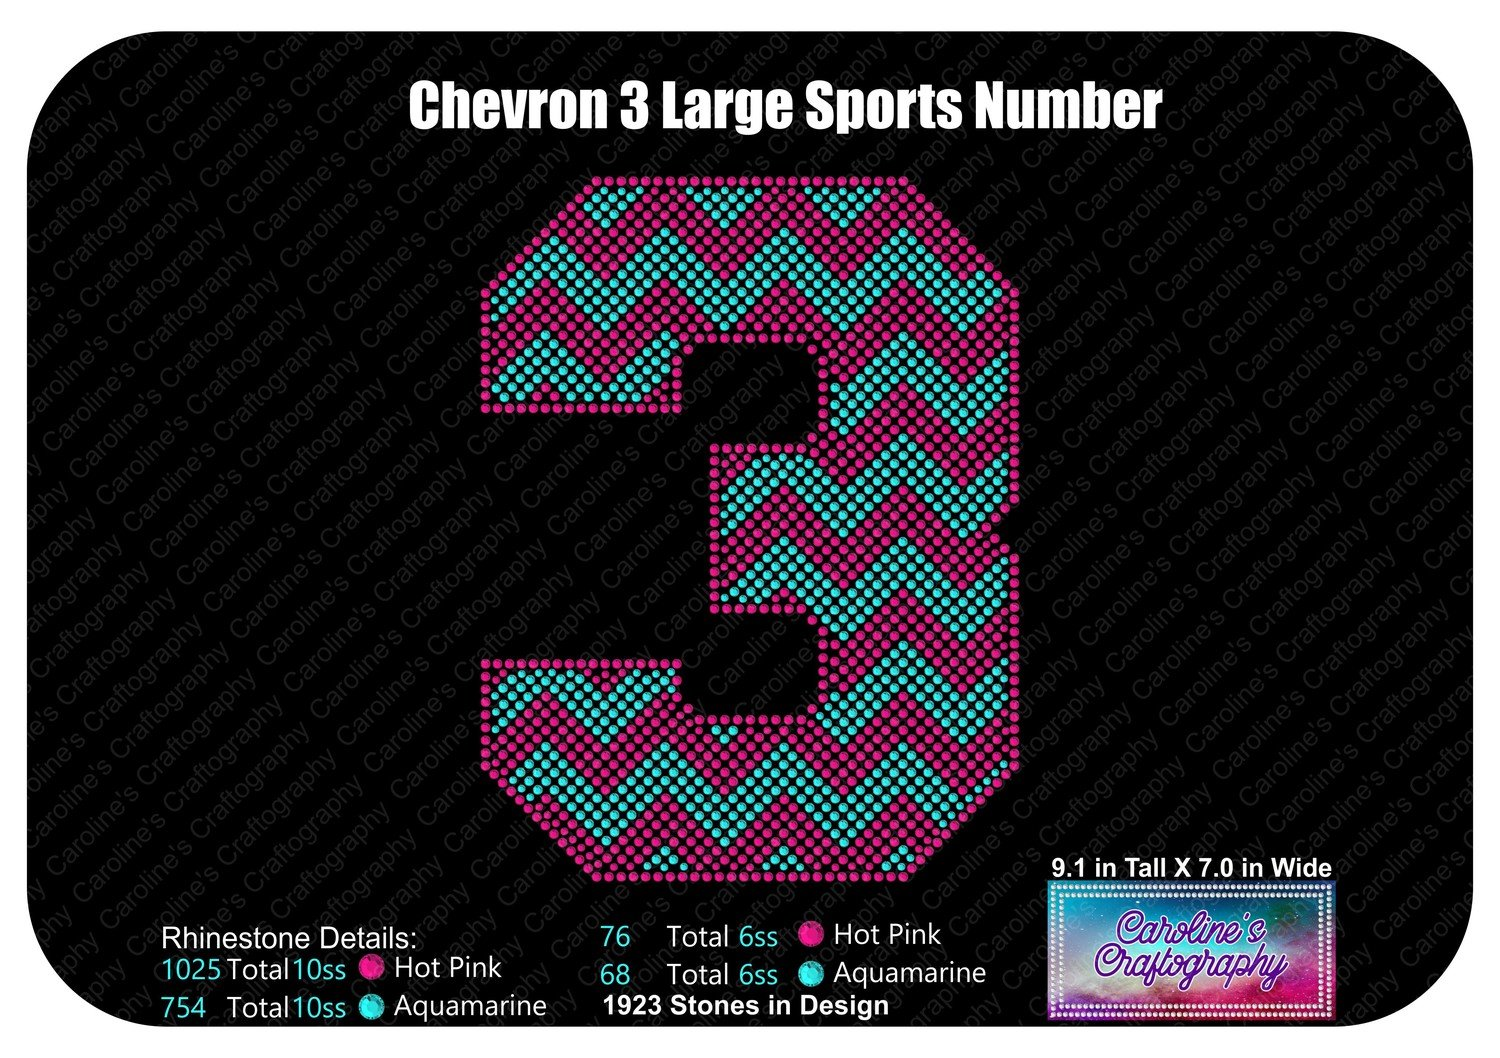 3 Chevron Large Sports Number